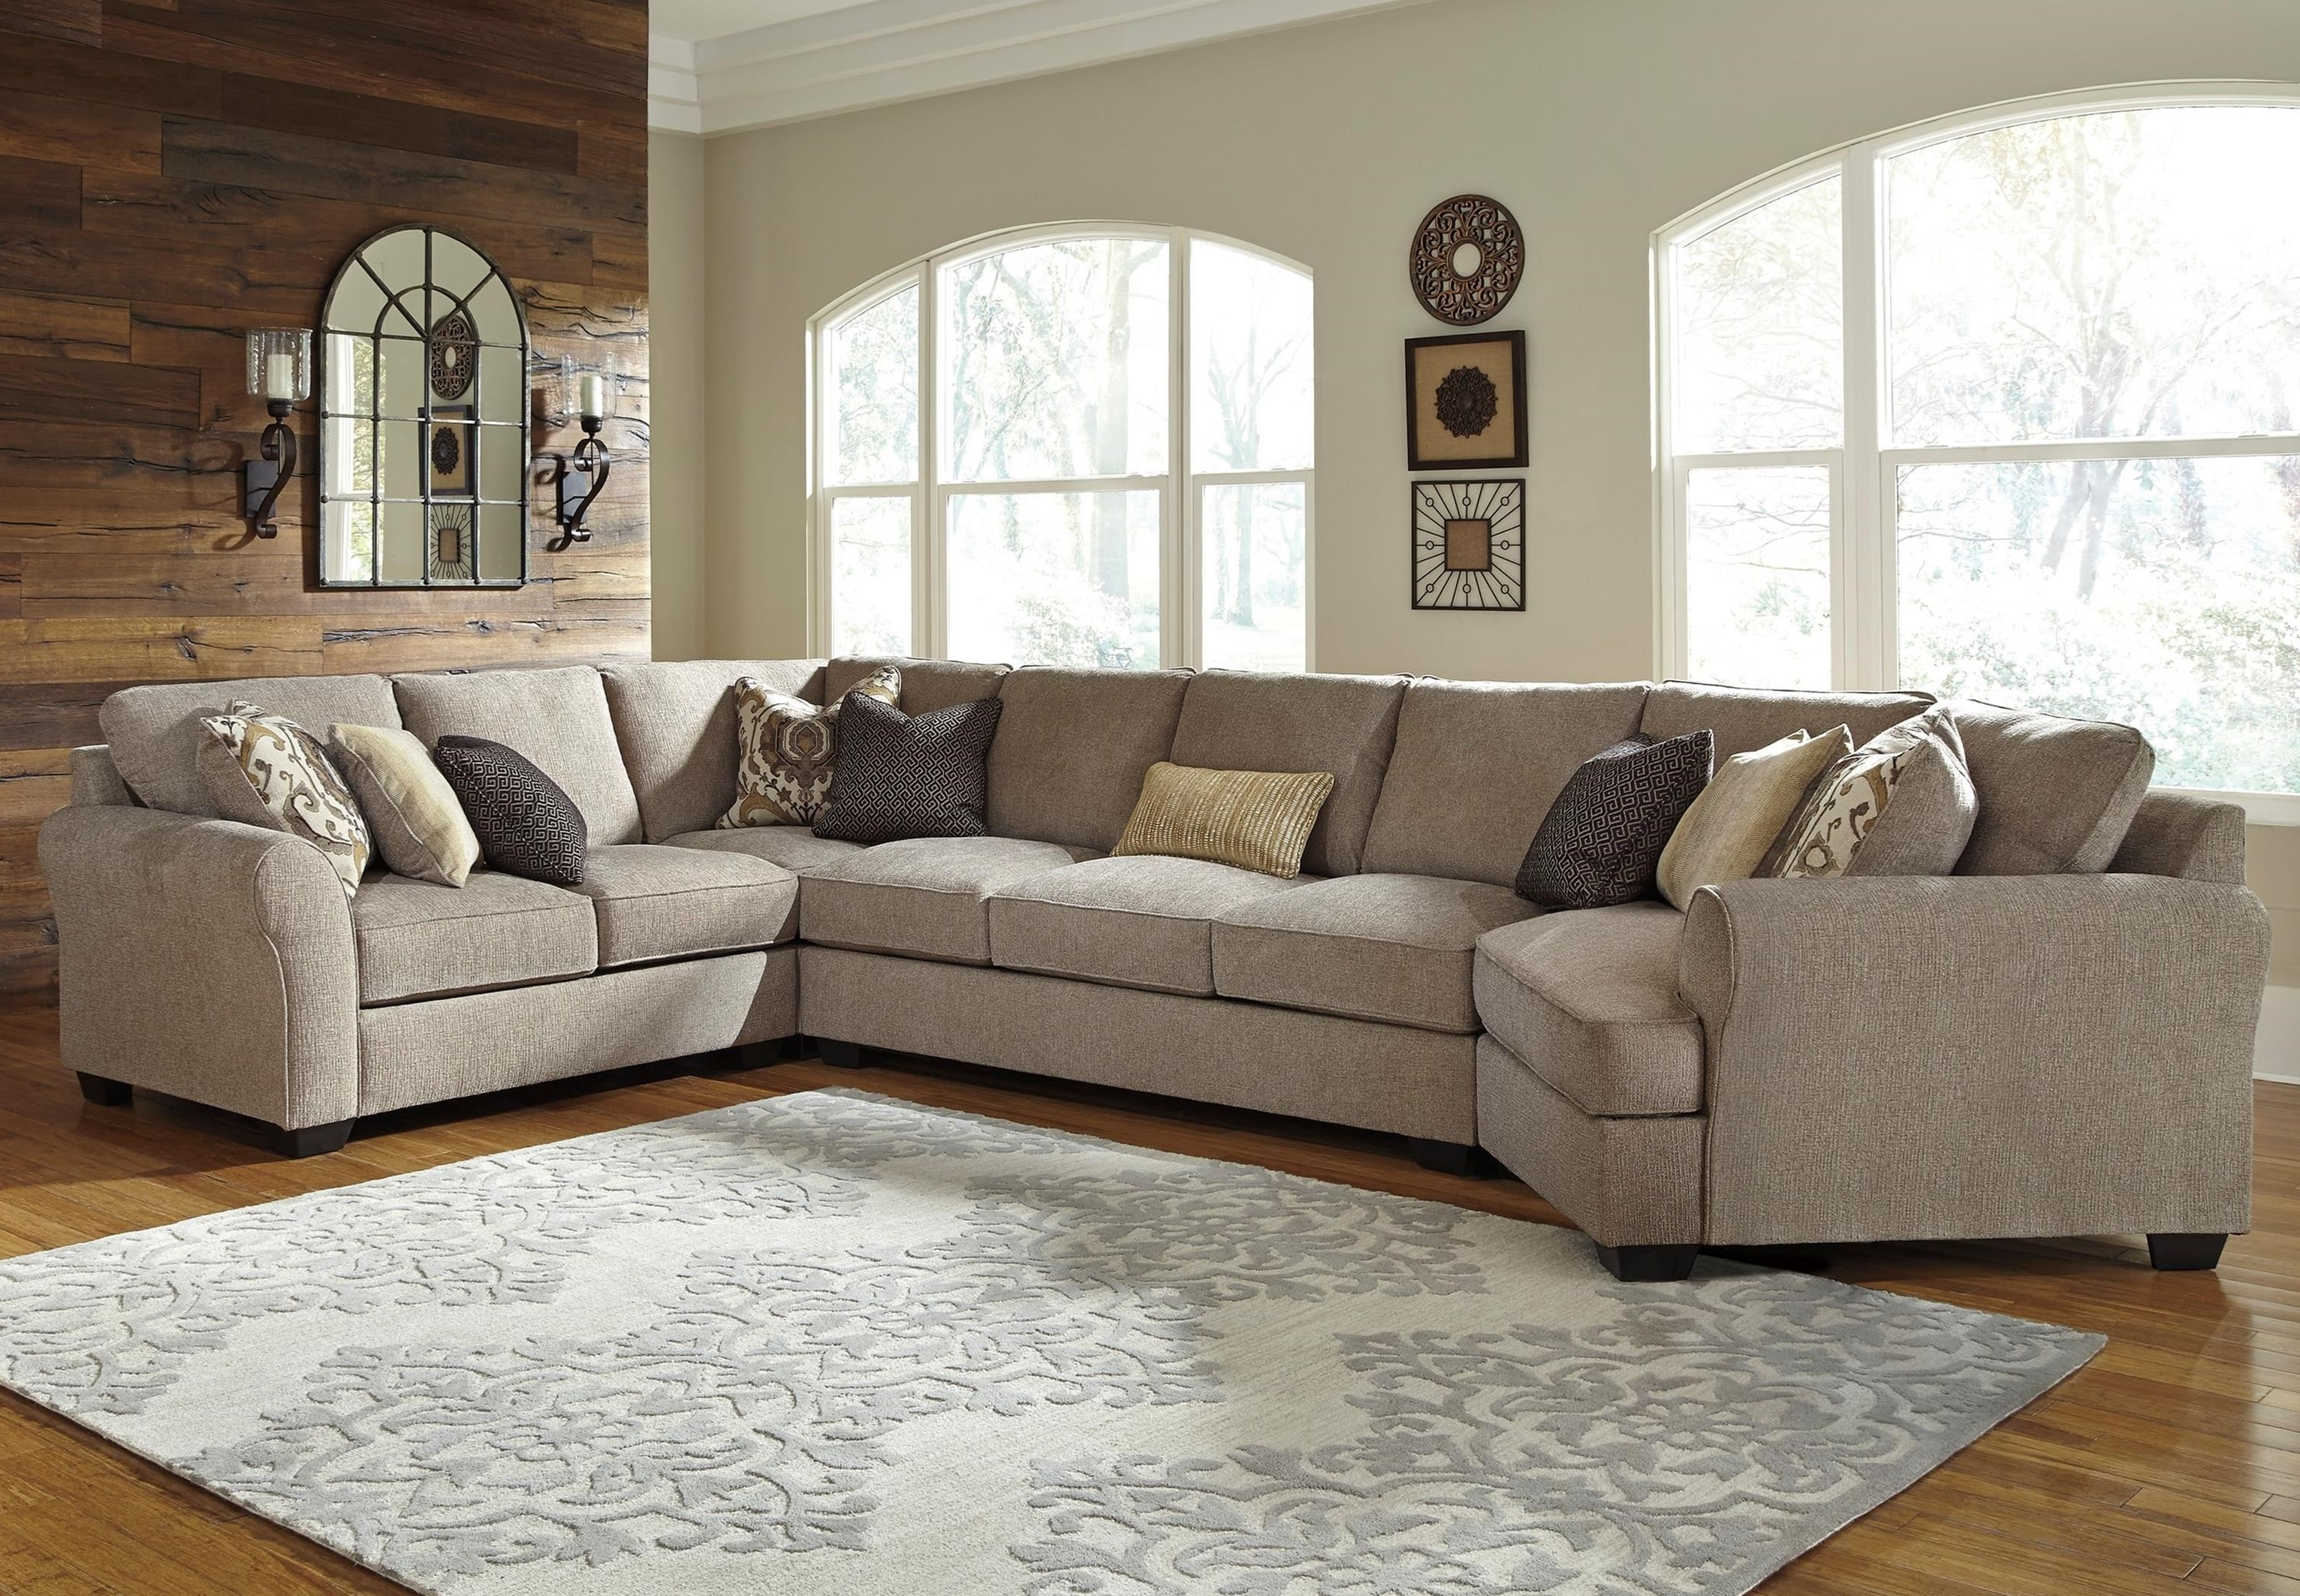 Most Recent Benchcraft Pantomine 4 Piece Sectional With Left Cuddler & Armless Intended For Sectionals With Cuddler And Chaise (View 5 of 15)